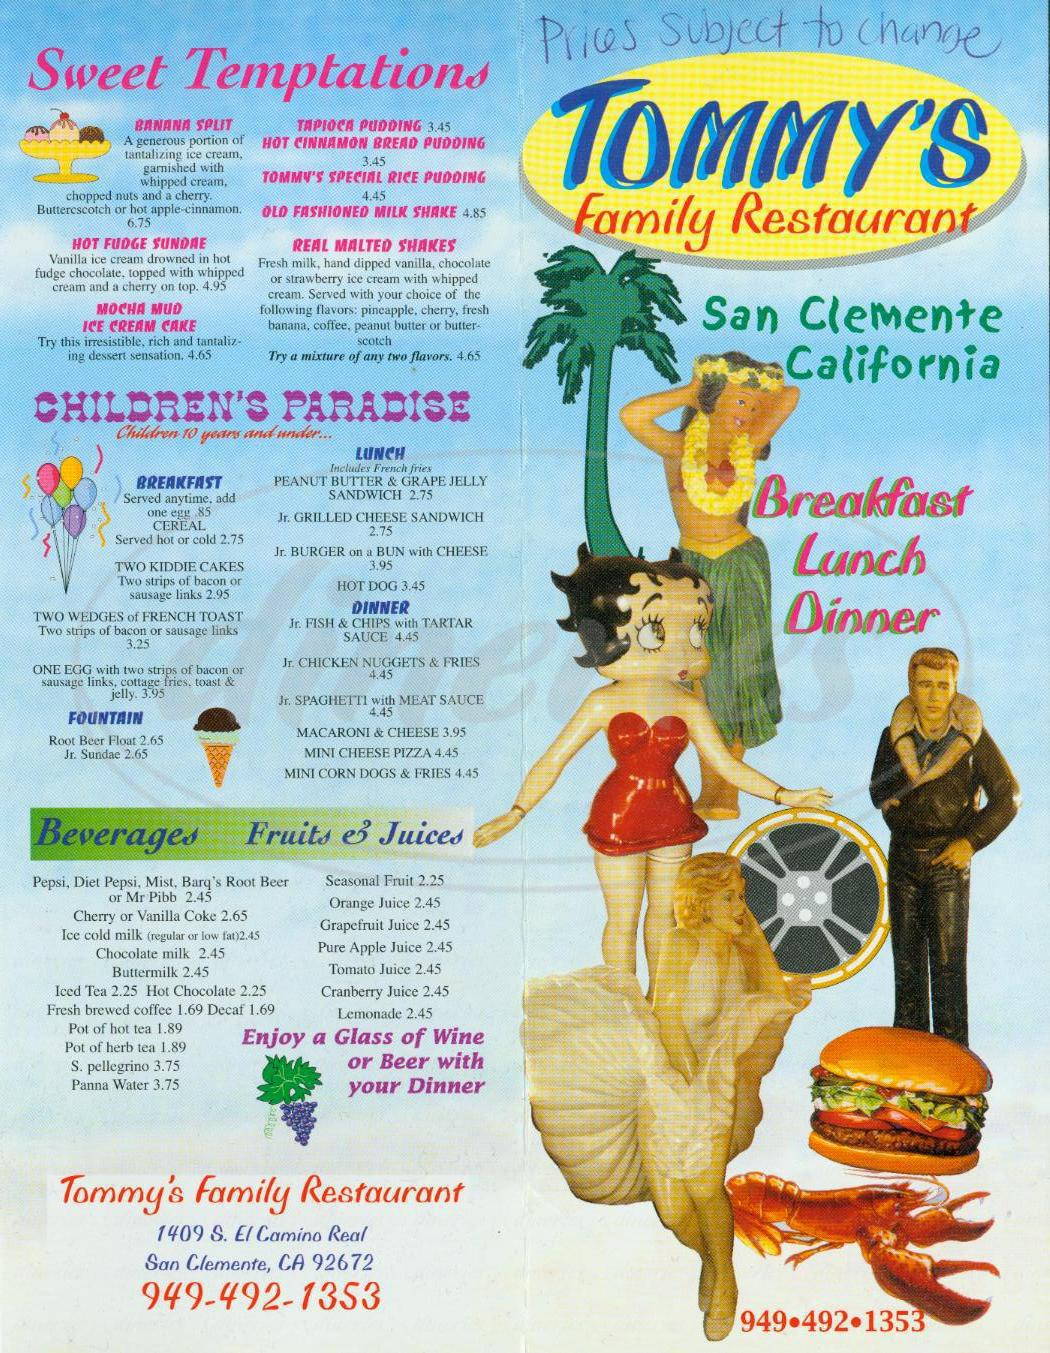 menu for Tommy's Family Restaurant